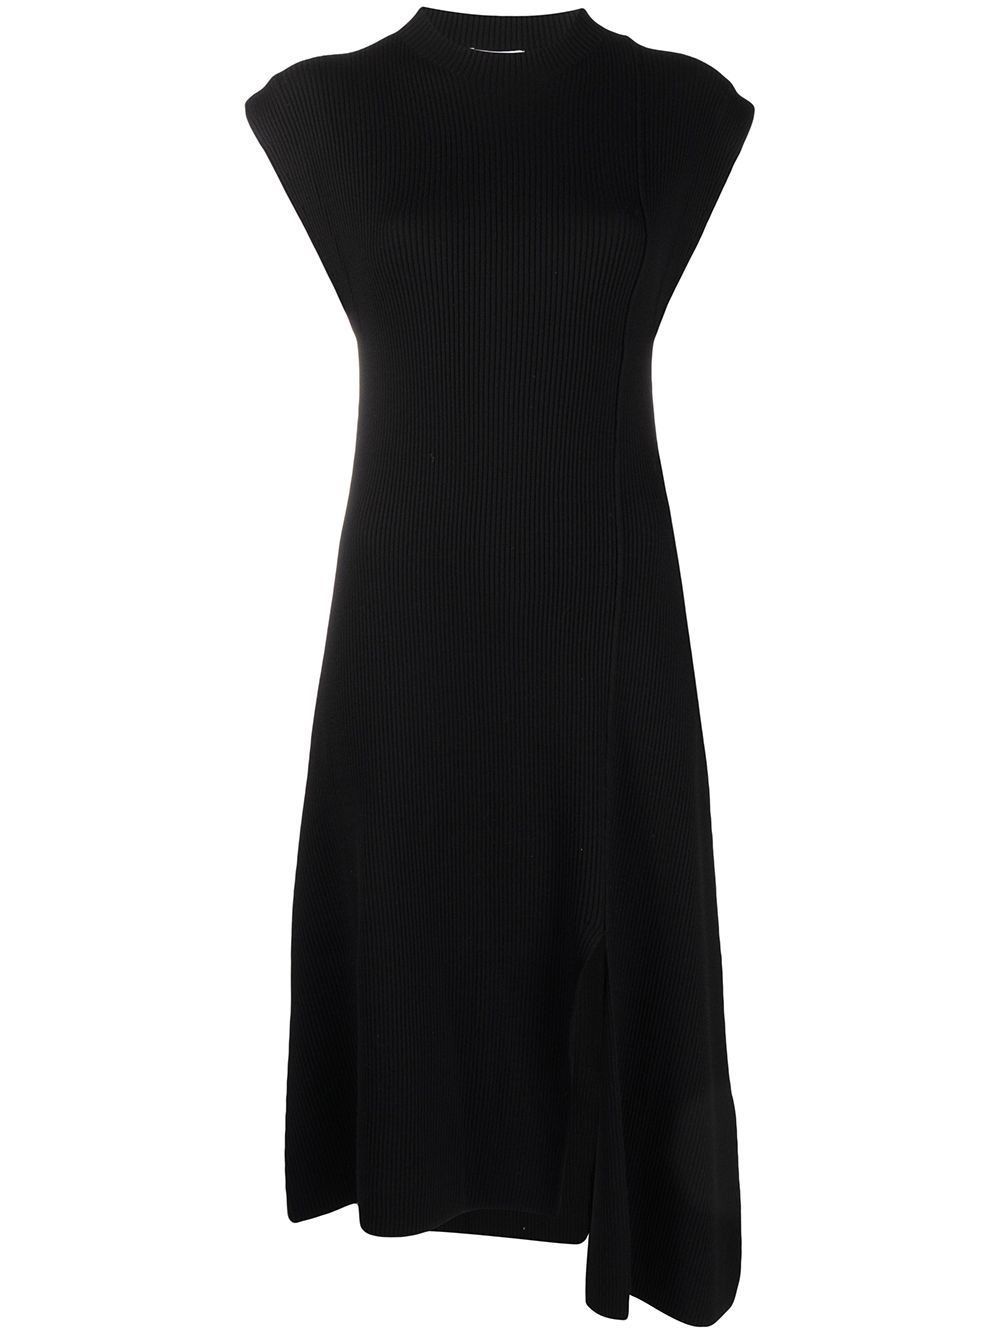 KENZO KENZO WOMEN'S FB52RO5523AD99 BLACK POLYESTER DRESS